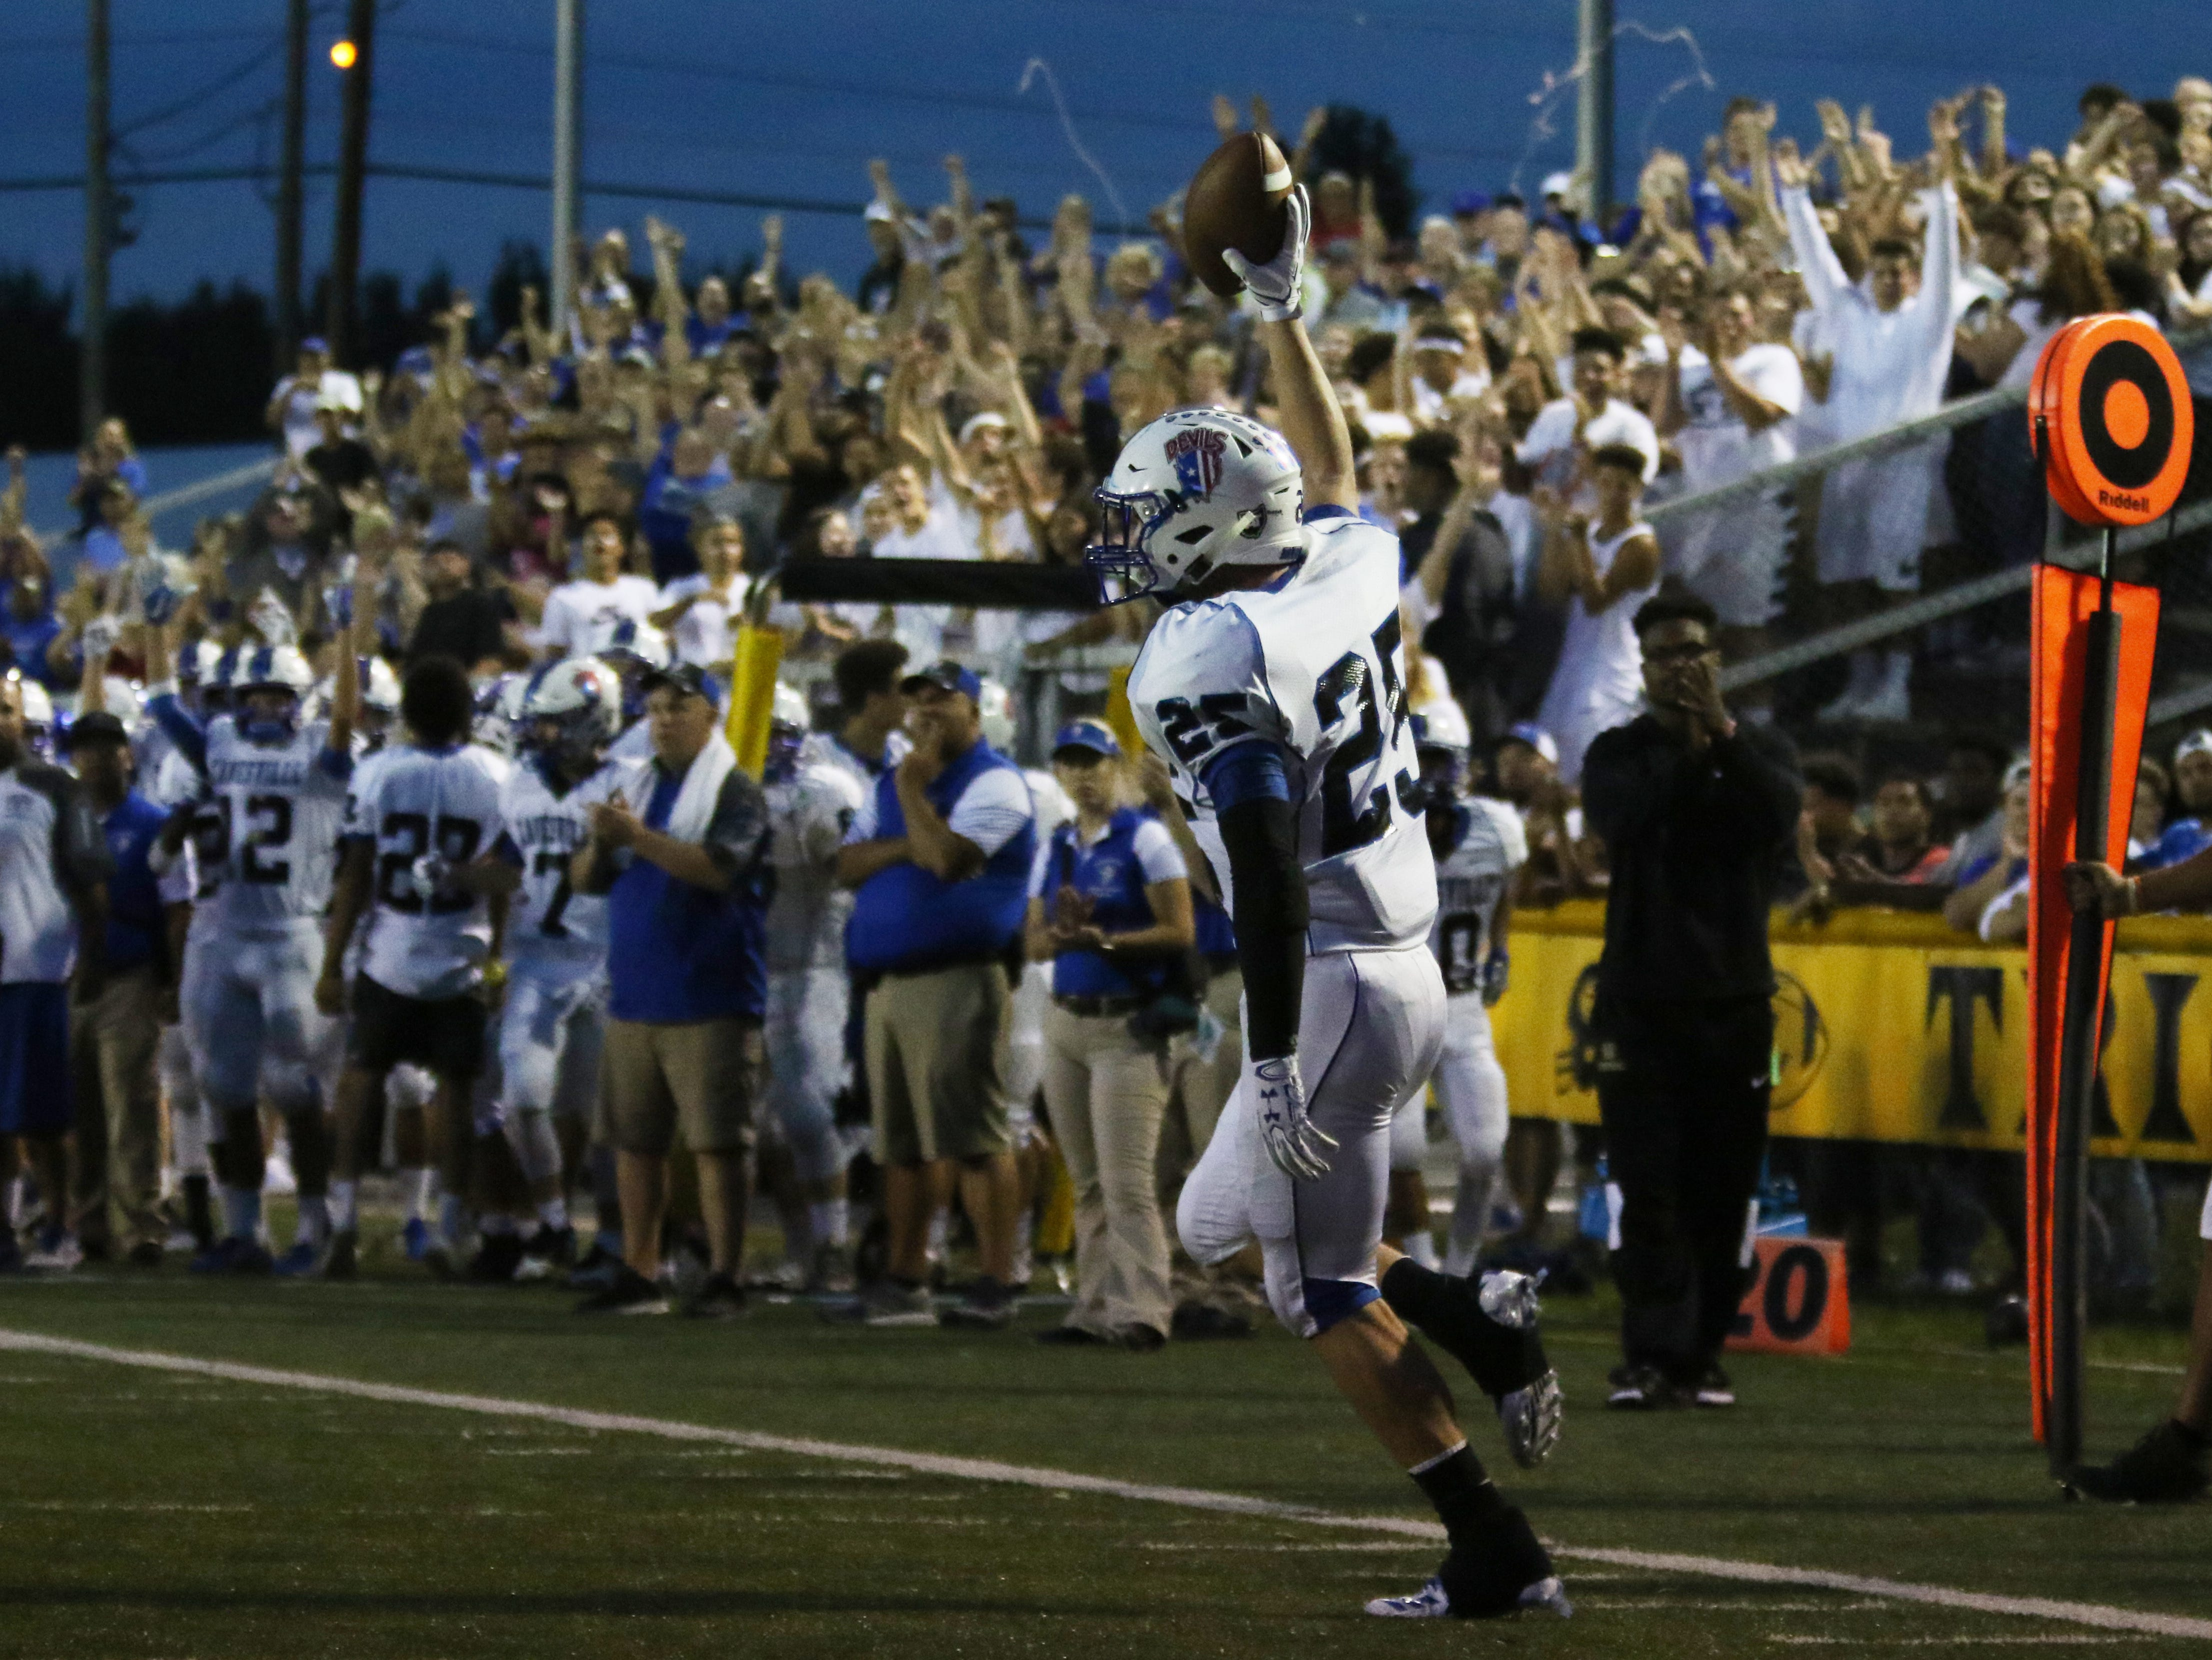 Zanesville's Dekker Davis celebrates after scoring against Tri-Valley.